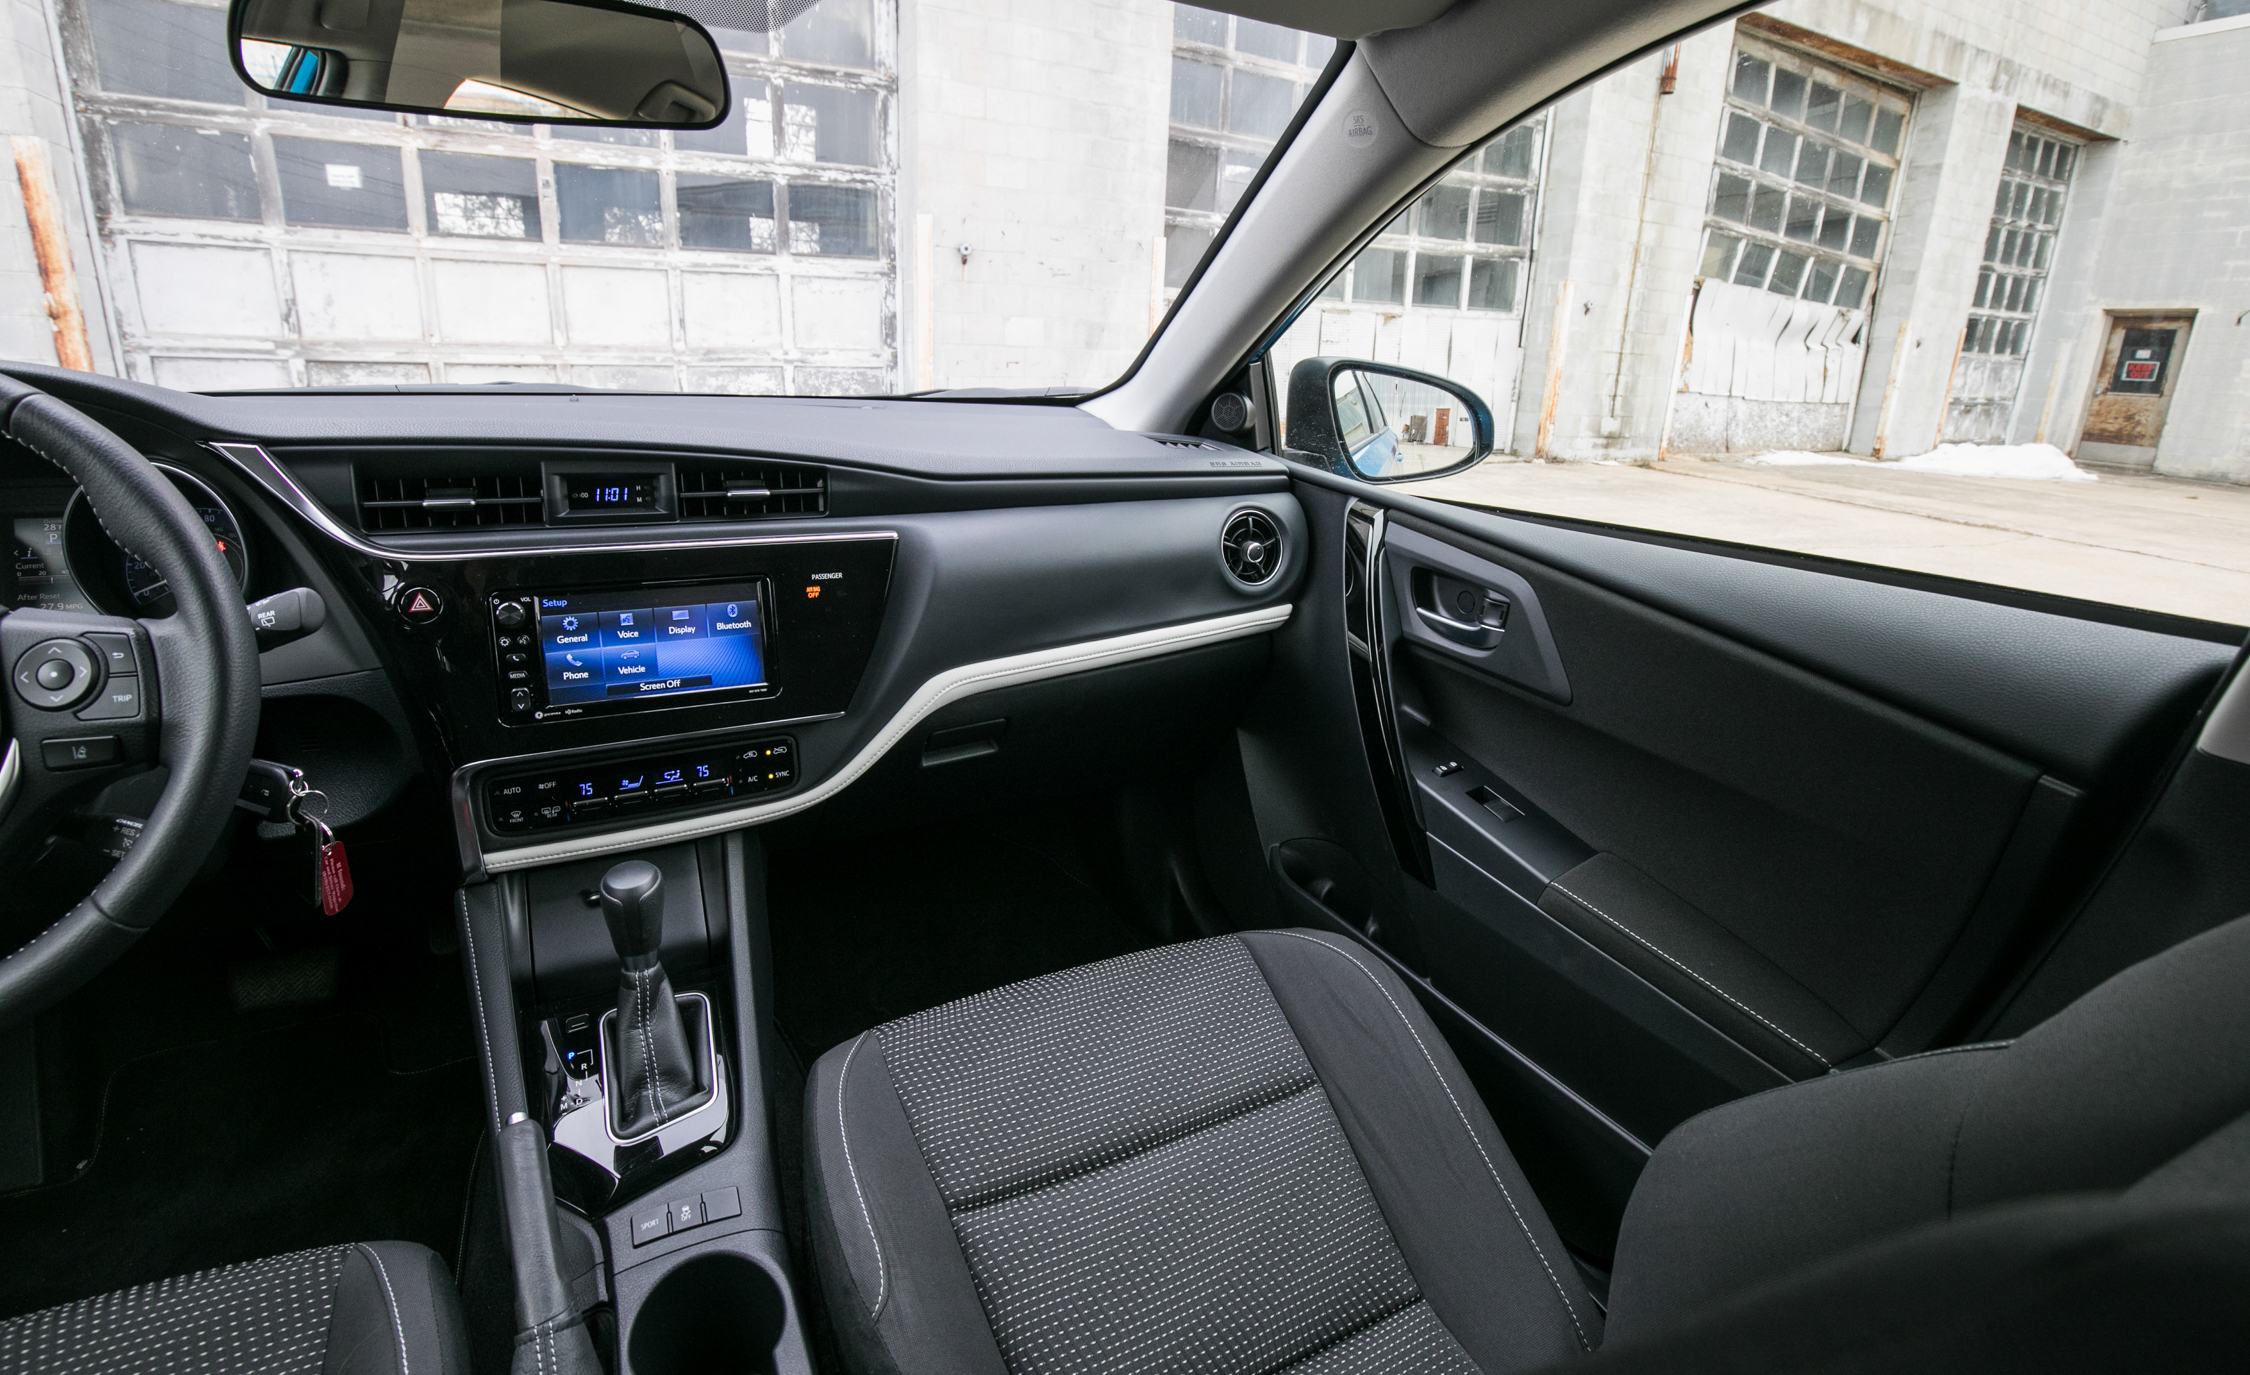 2017 Toyota Corolla IM Hatchback Interior Dasboard Front (Photo 23 of 52)